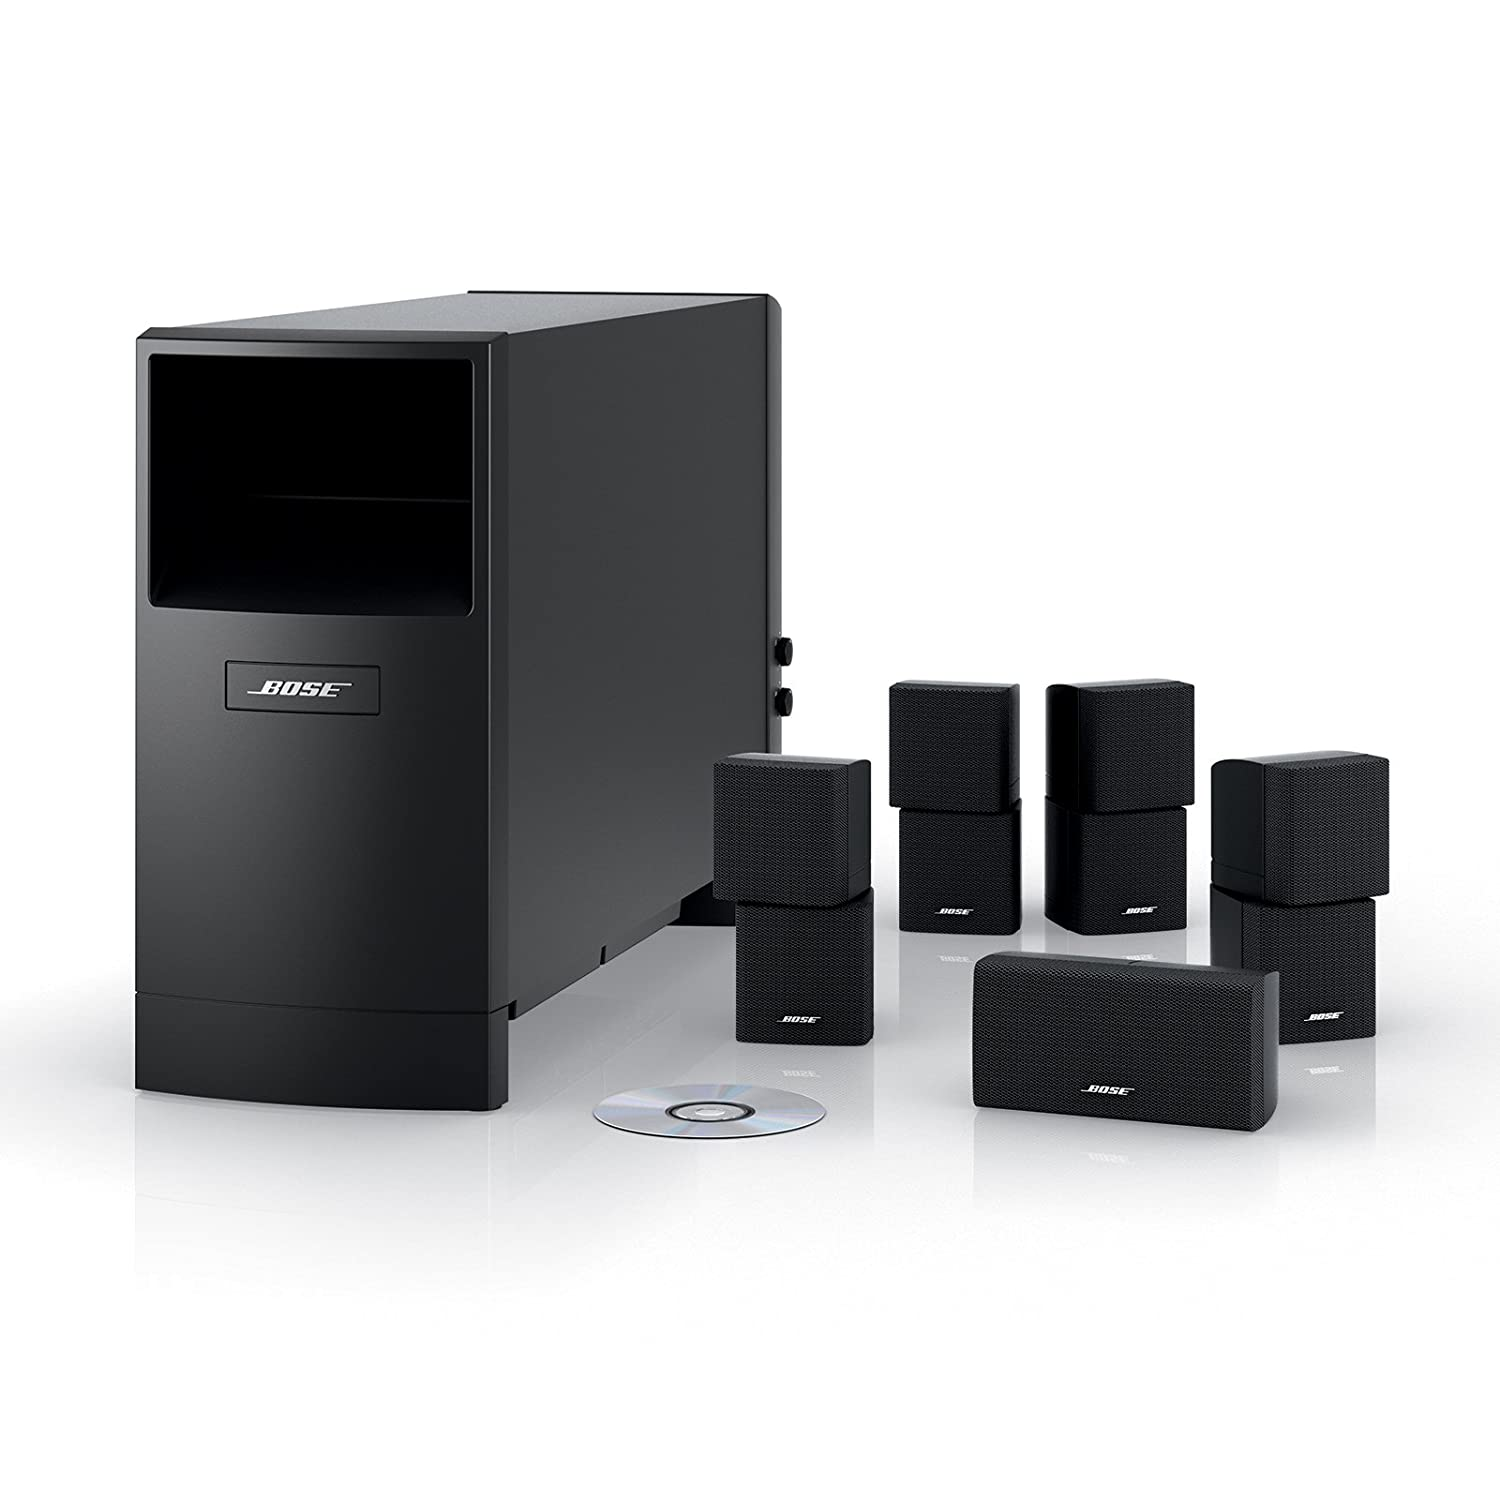 Bose Acoustimass 10 Series Iv Home Entertainment Speaker 301 Wiring Diagram System Black Audio Theater